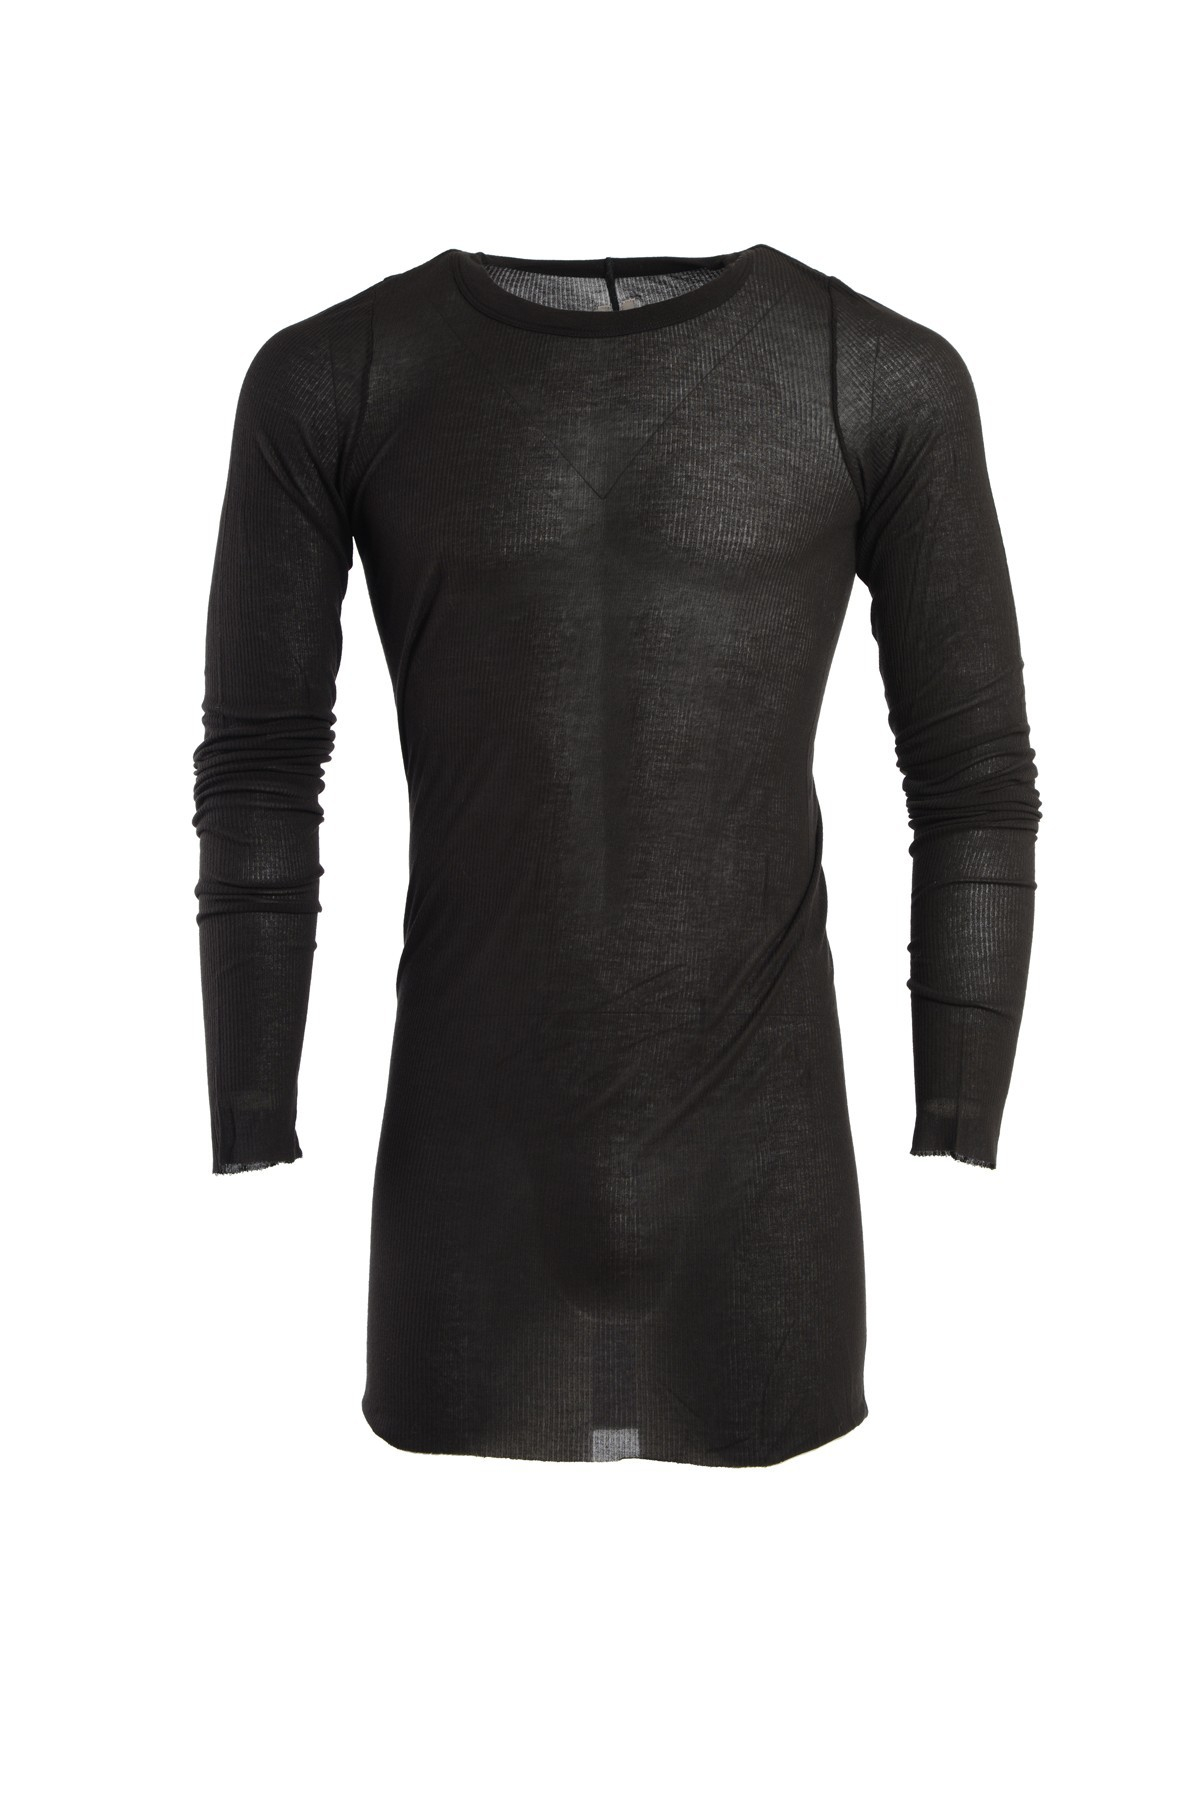 Rick Owens Extra Long T Shirt In Black For Men Lyst